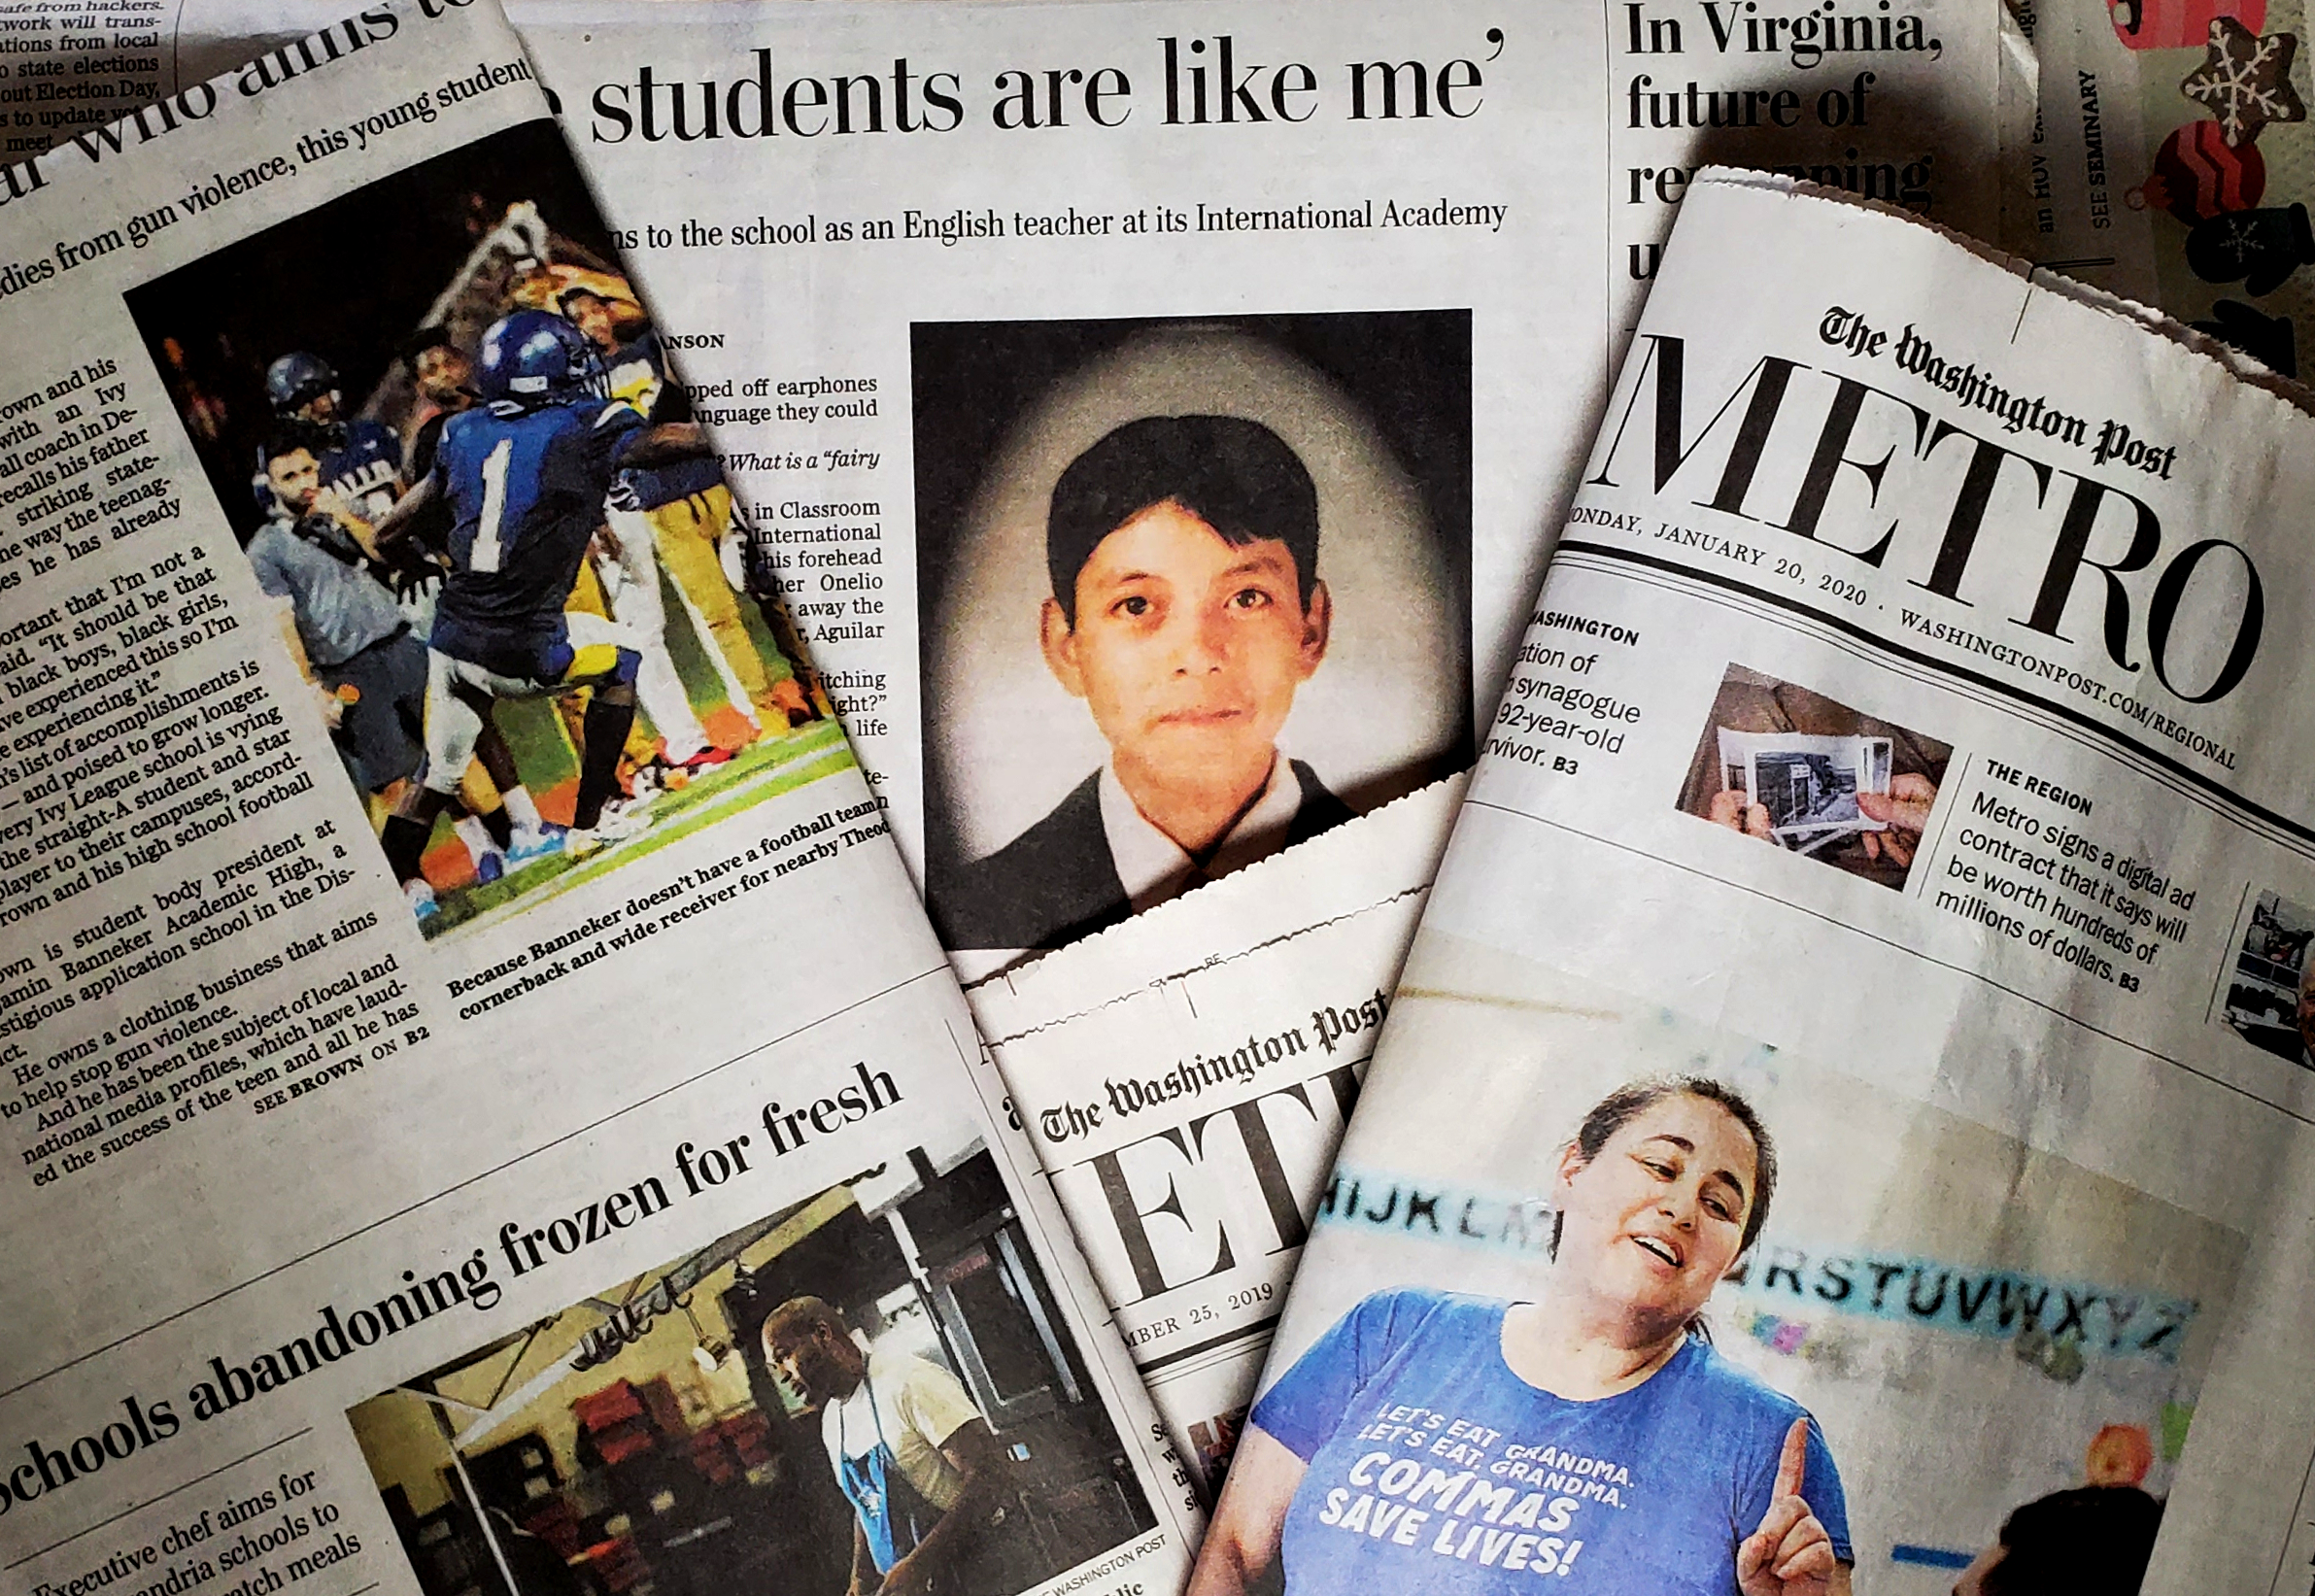 Washington Post Metro section covers with ACPS stories